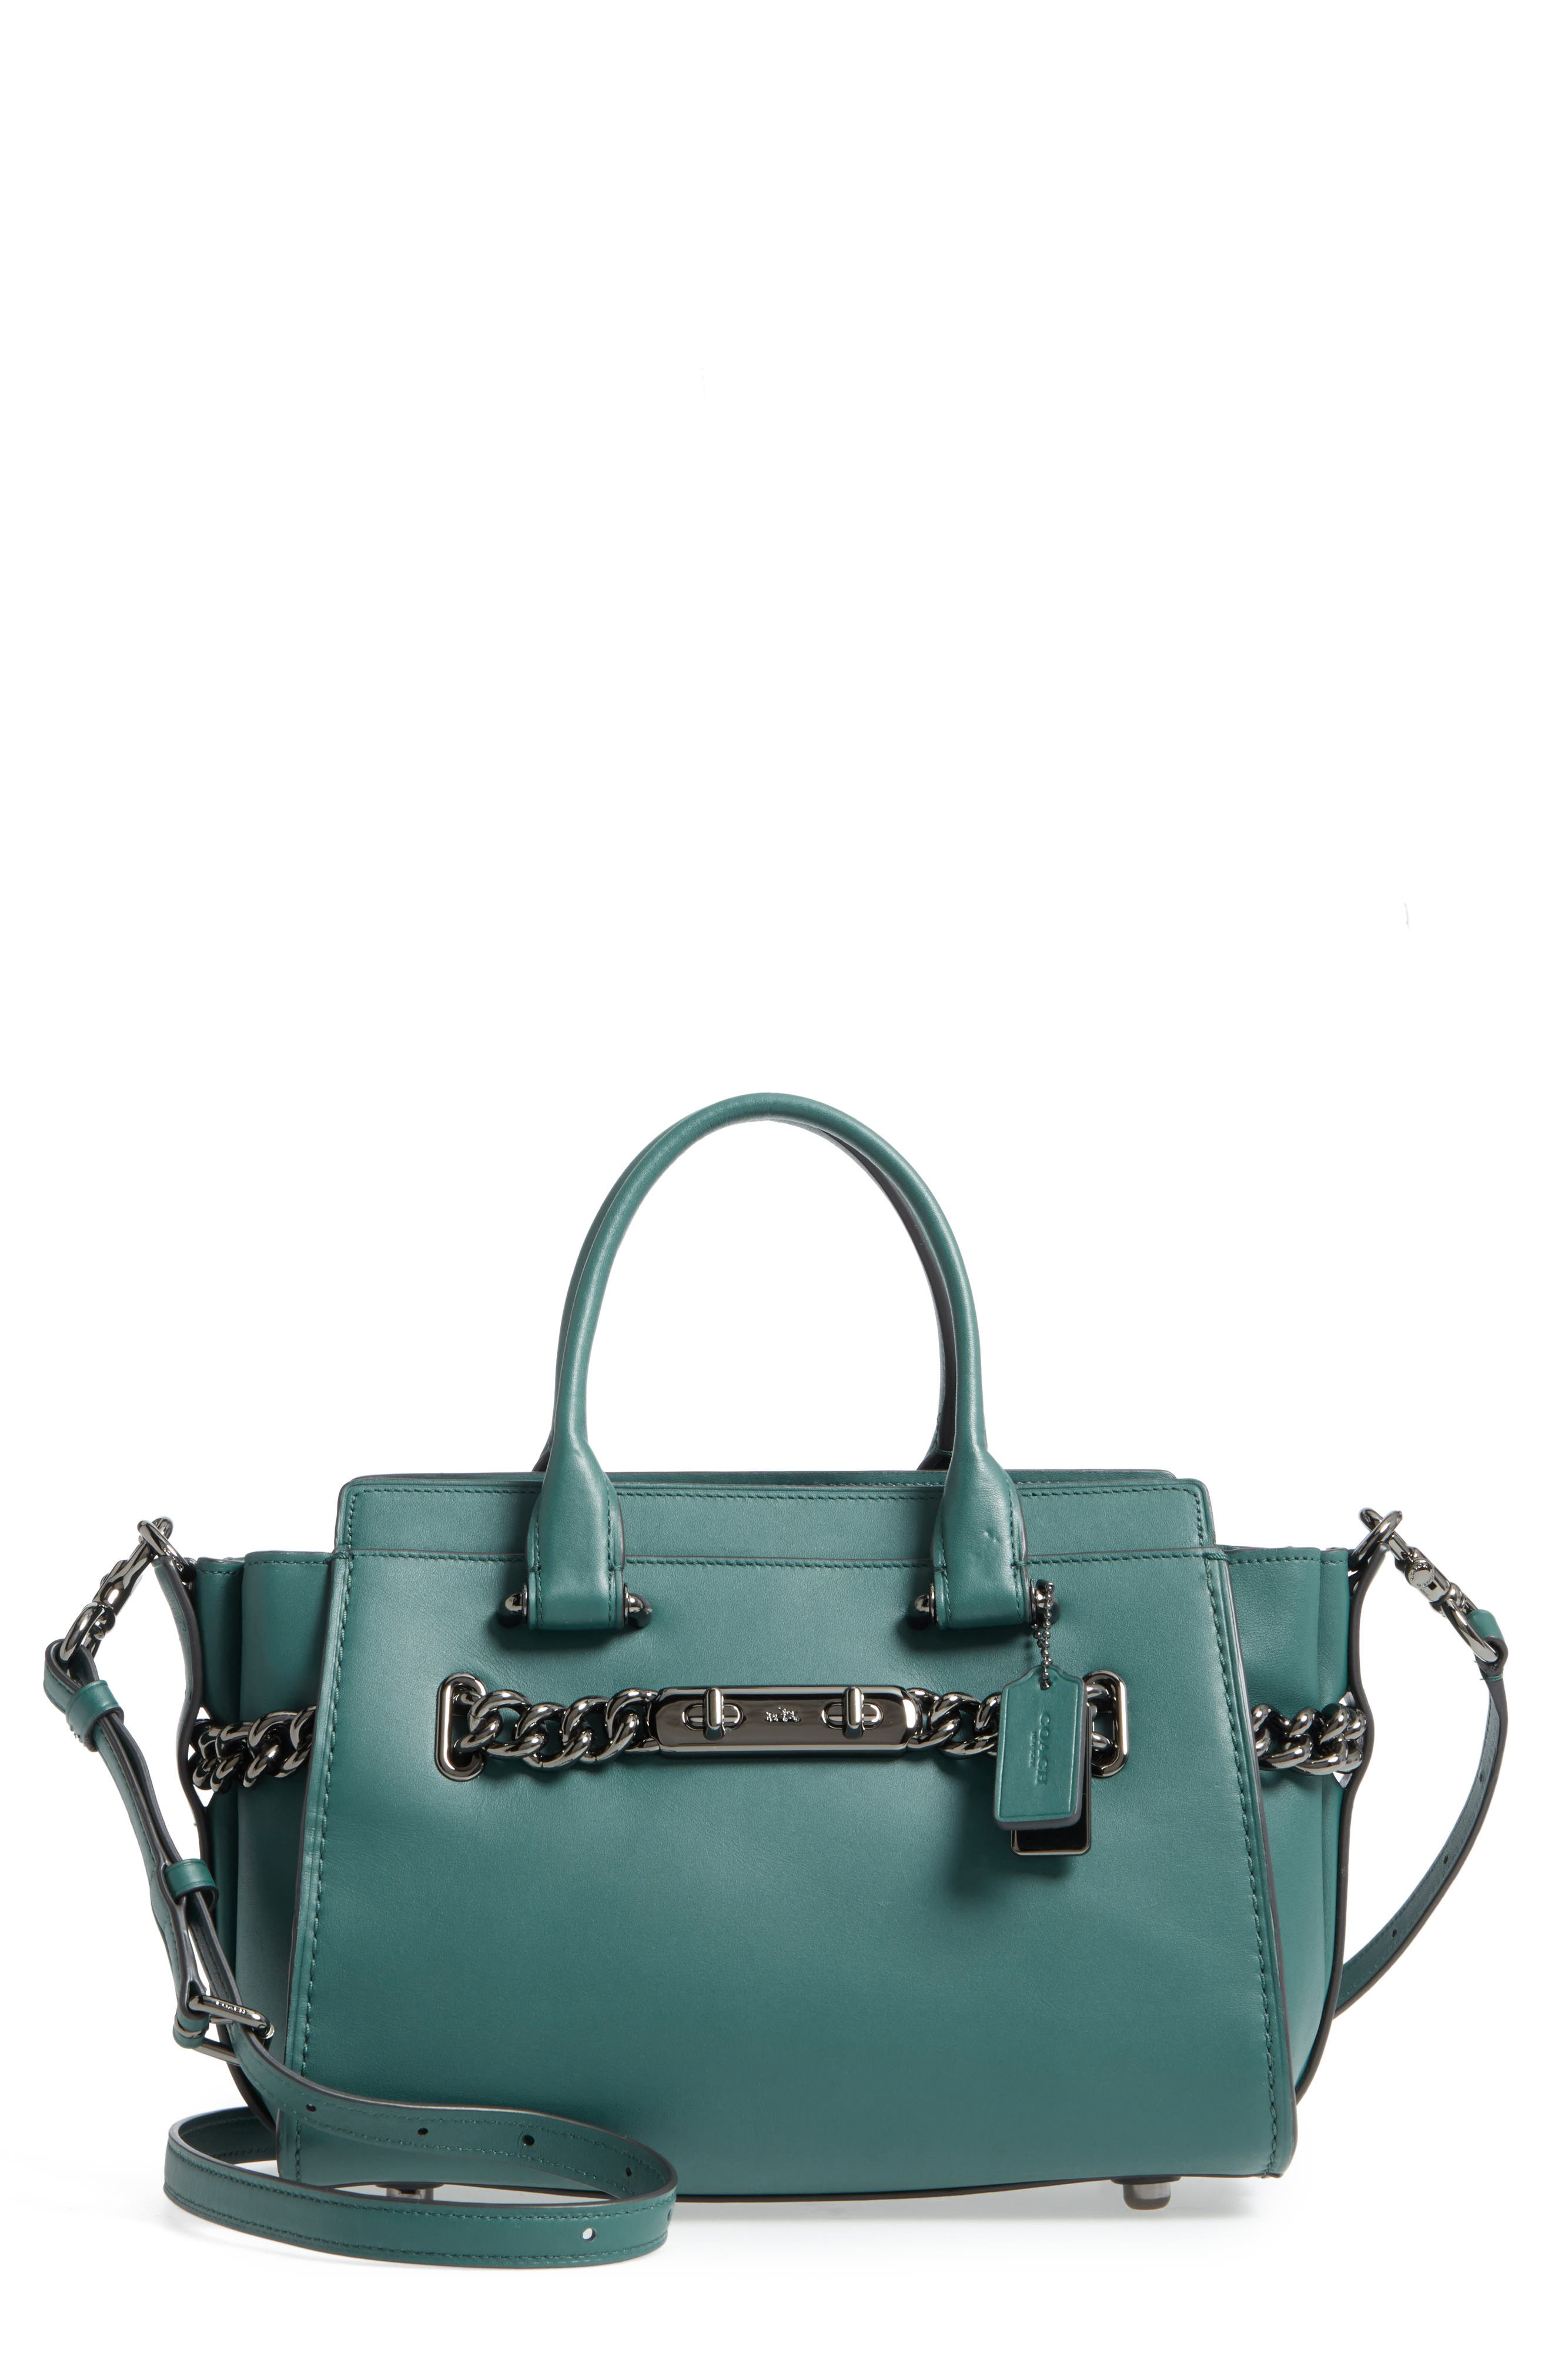 ID Bracelet Swagger 27 Calfskin Leather Satchel,                             Main thumbnail 1, color,                             Dark Turquoise